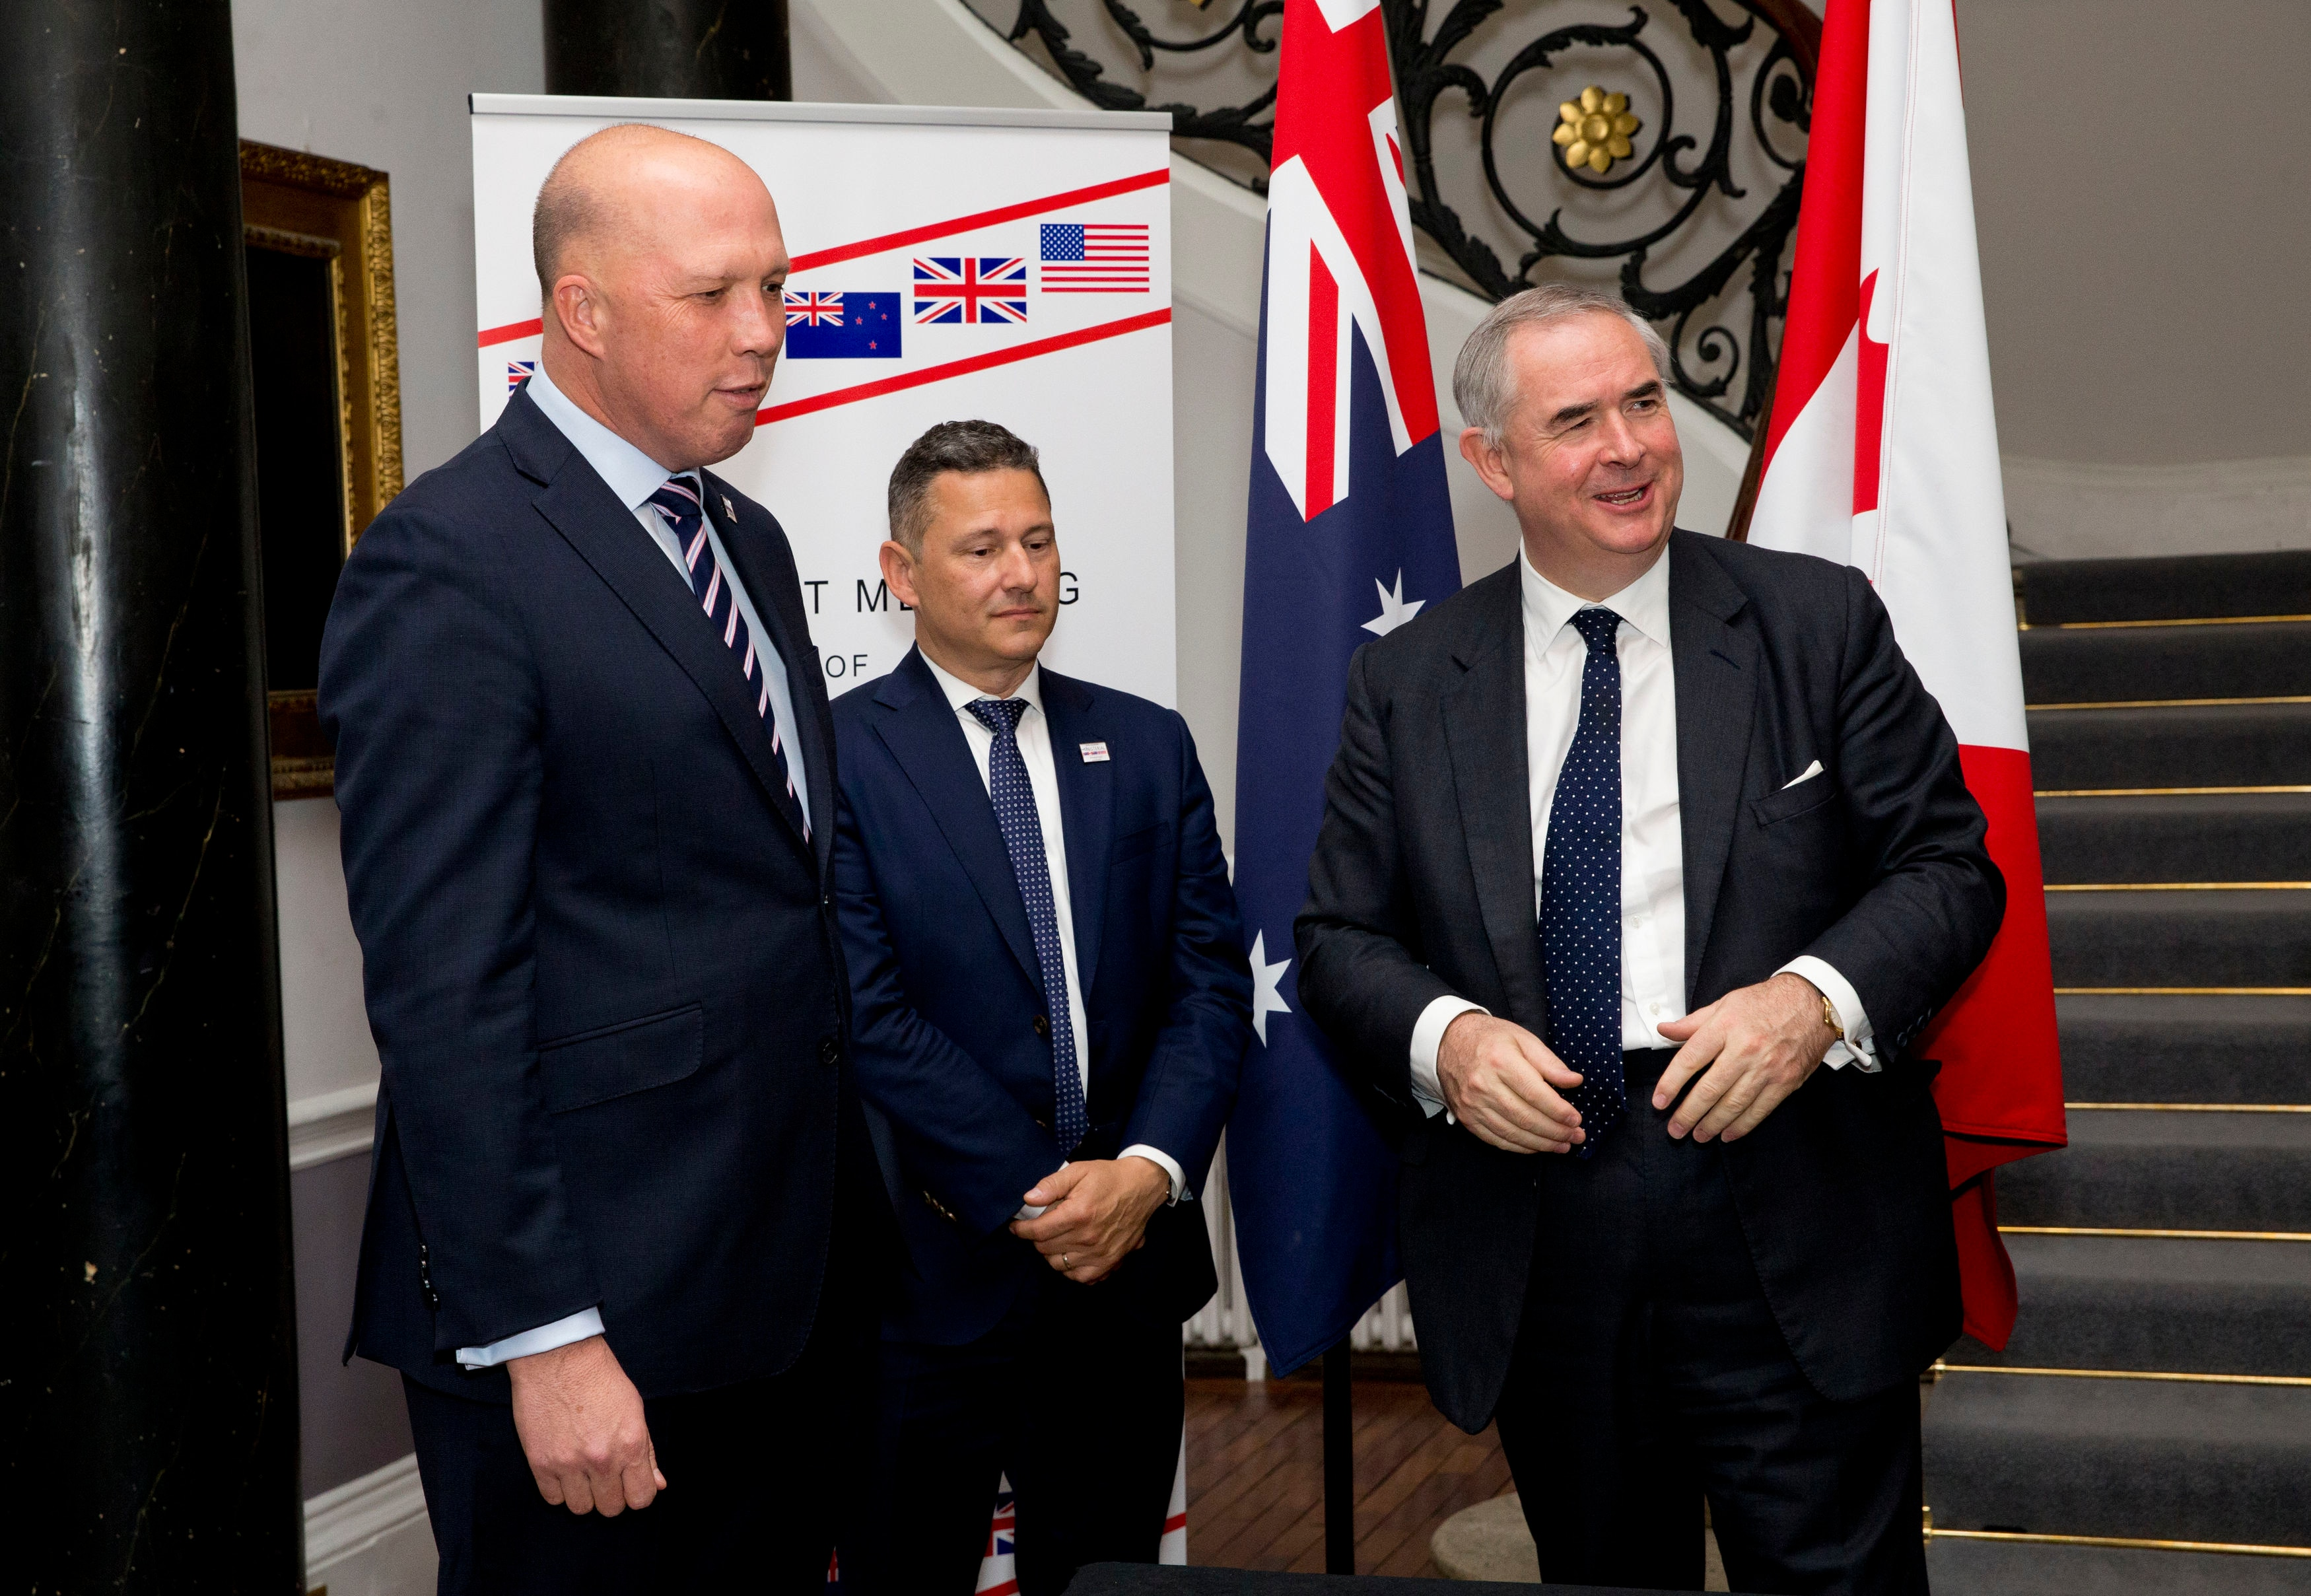 Mr Dutton, Canada's Justice Minister Francois Daigle and United Kingdom's Attorney General Geoffrey Cox.